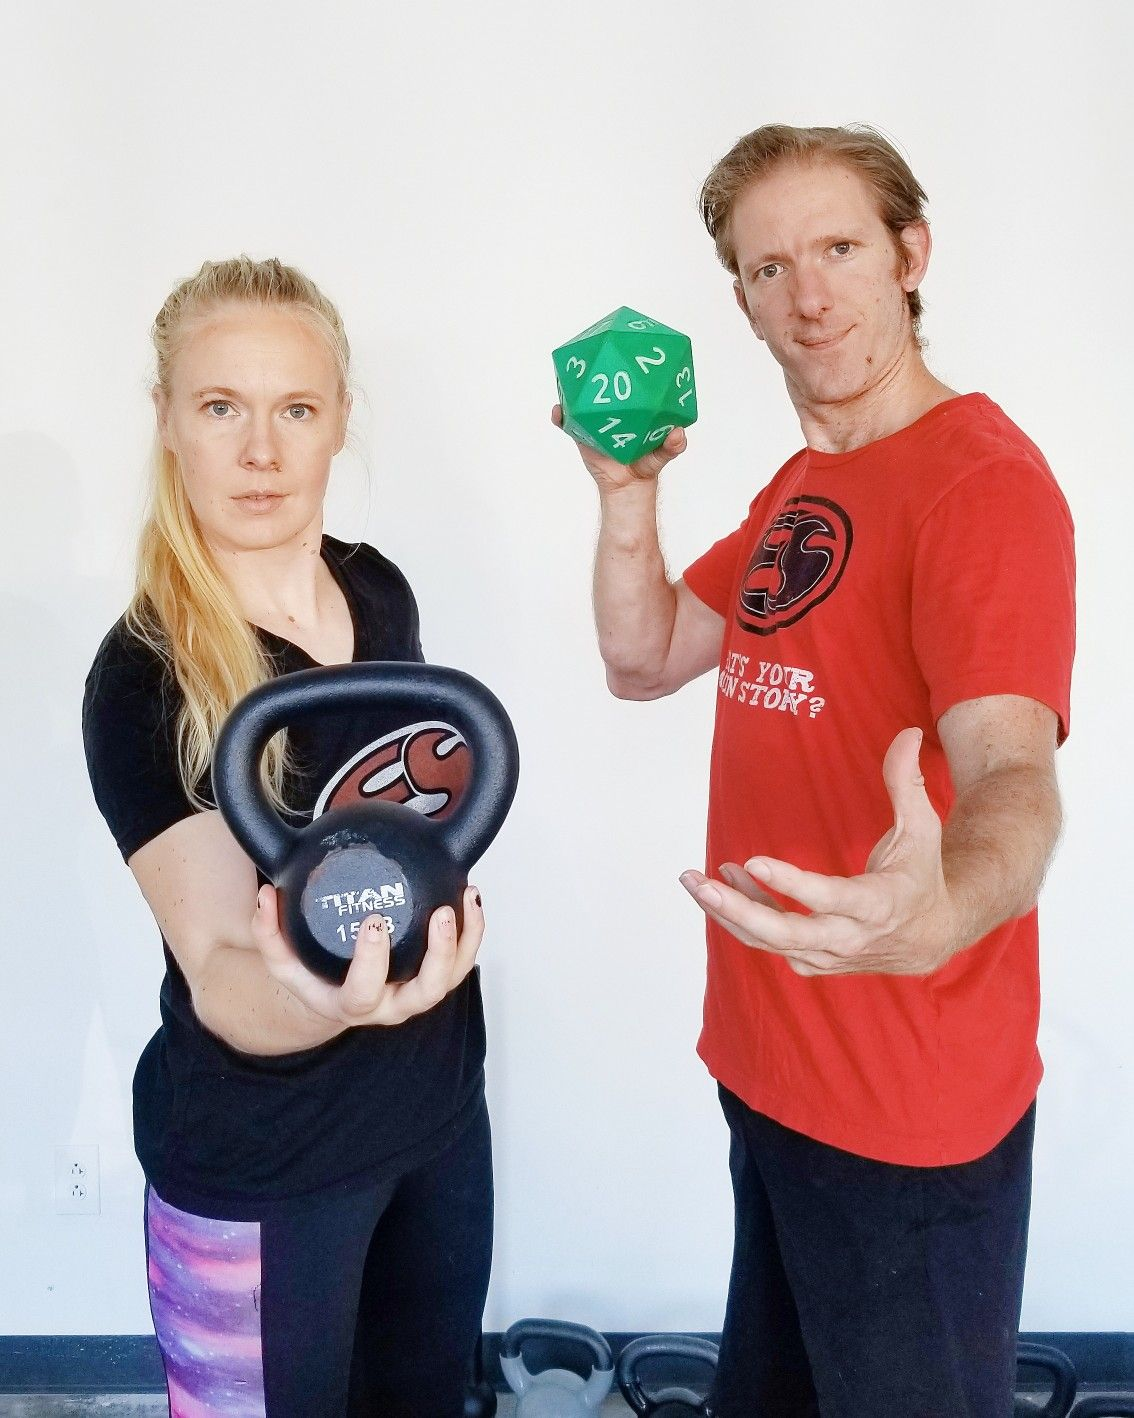 Mission Quest Rpg Fitness Fitness Class Personal Training Group Fitness